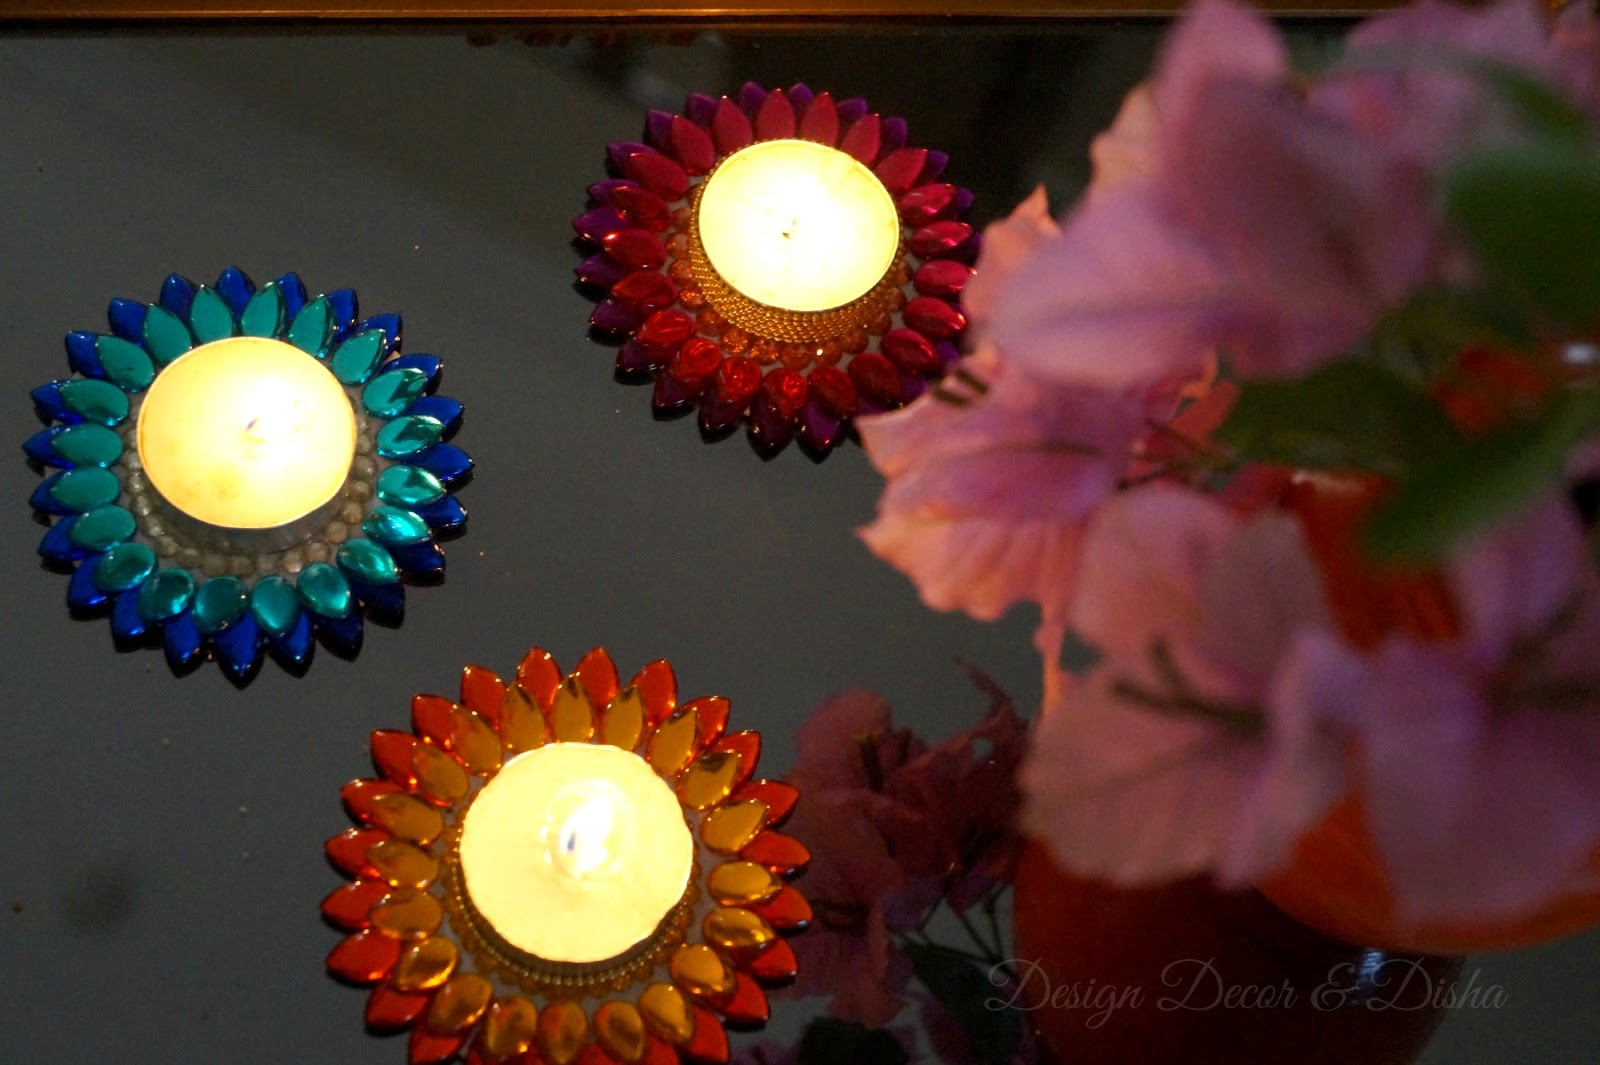 Diwali Decoration Ideas And Crafts Design Decor And Disha An Indian Design And Decor Blog Diy